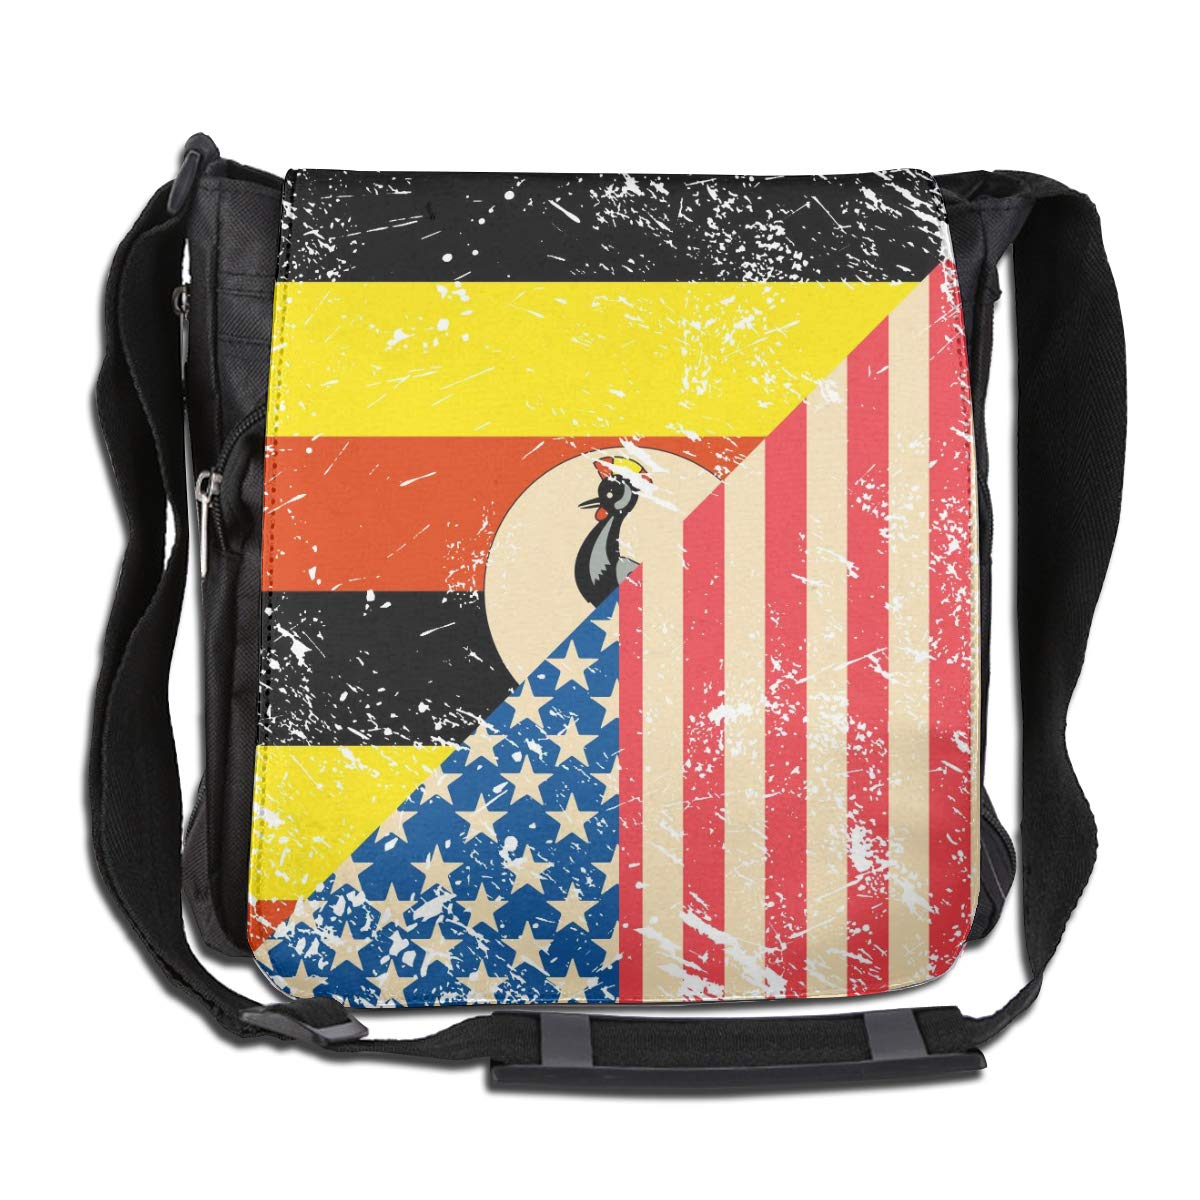 American And Uganda Retro Flag Crossbody Shoulder Bag Novelty Casual Daily Messenger Bag Satchel School Bag For Women And Men